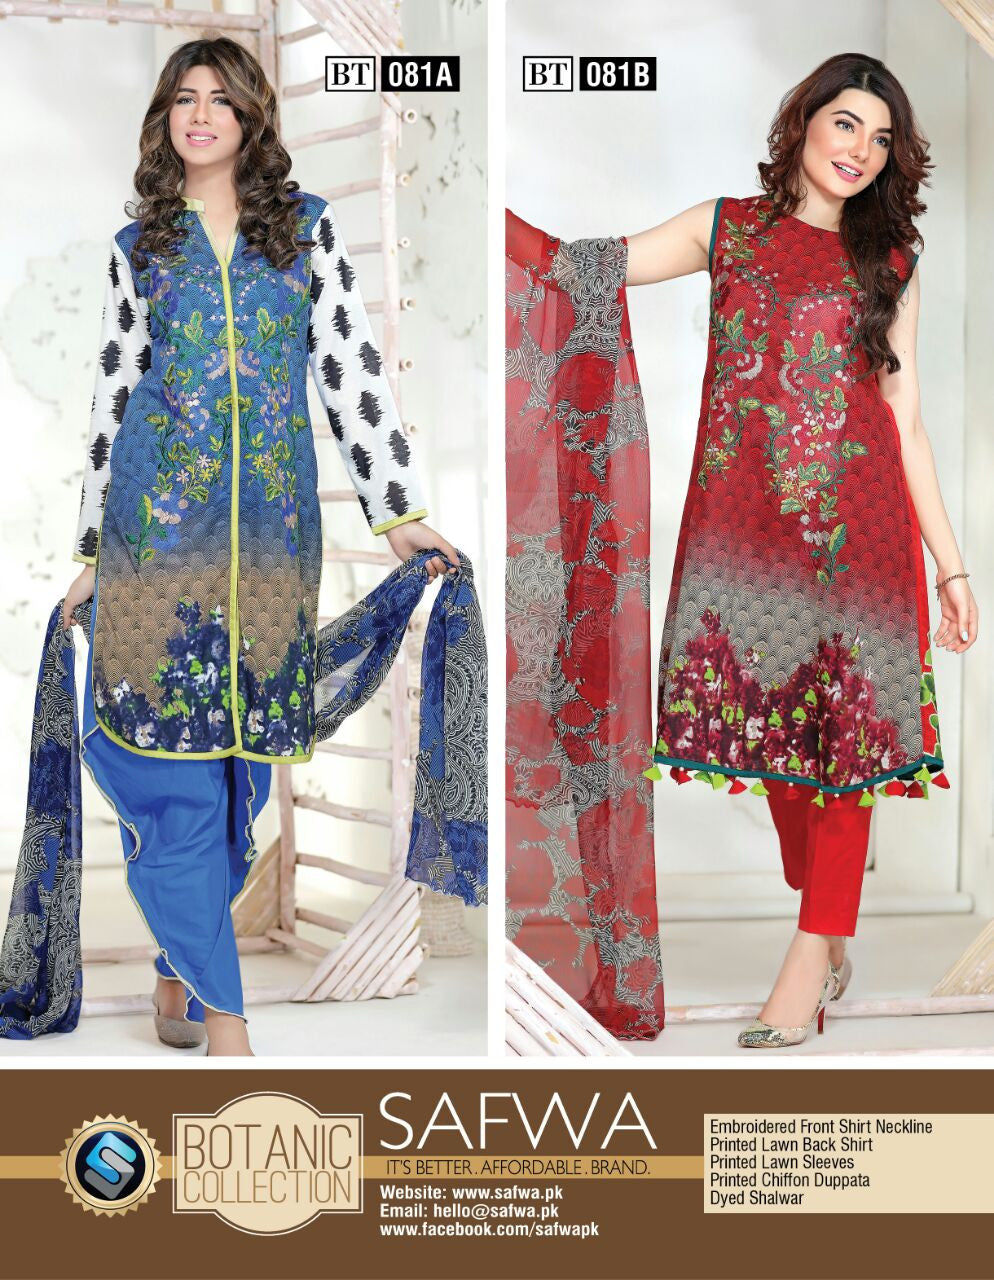 bb41bc7434 Safwa Botanic Collection Online Shopping Pakistan for women clothing  dresses suits